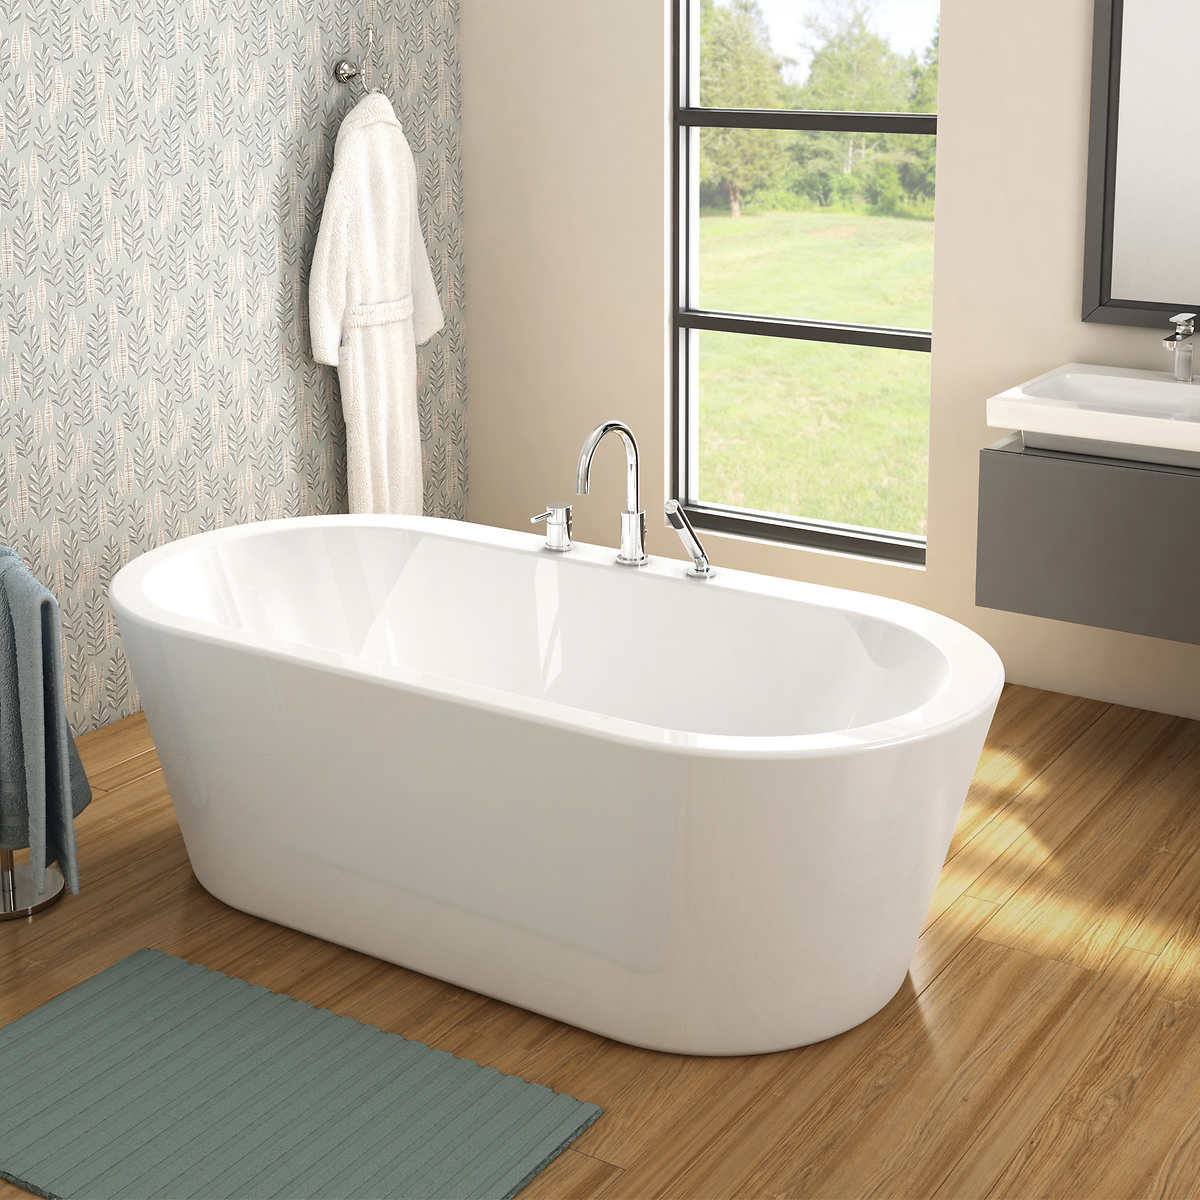 Jono Eloise Tub and Faucet ComboBathtubs   Costco. Free Standing Tub Canada. Home Design Ideas